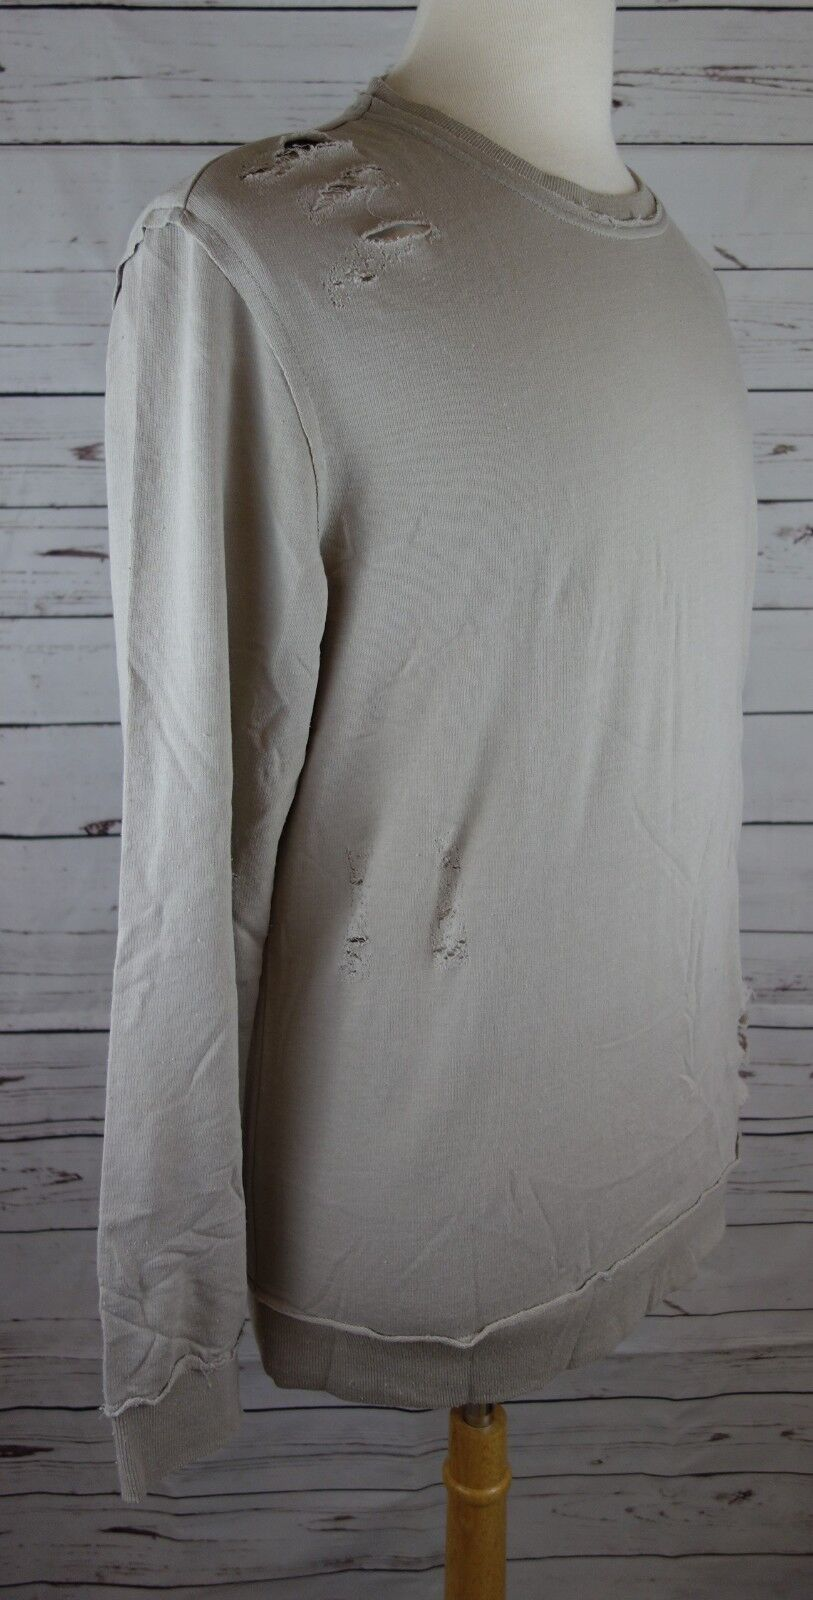 NEW INC International Concepts Men/'s Ripped Sweatshirt Smoked Silver MSRP $55.00